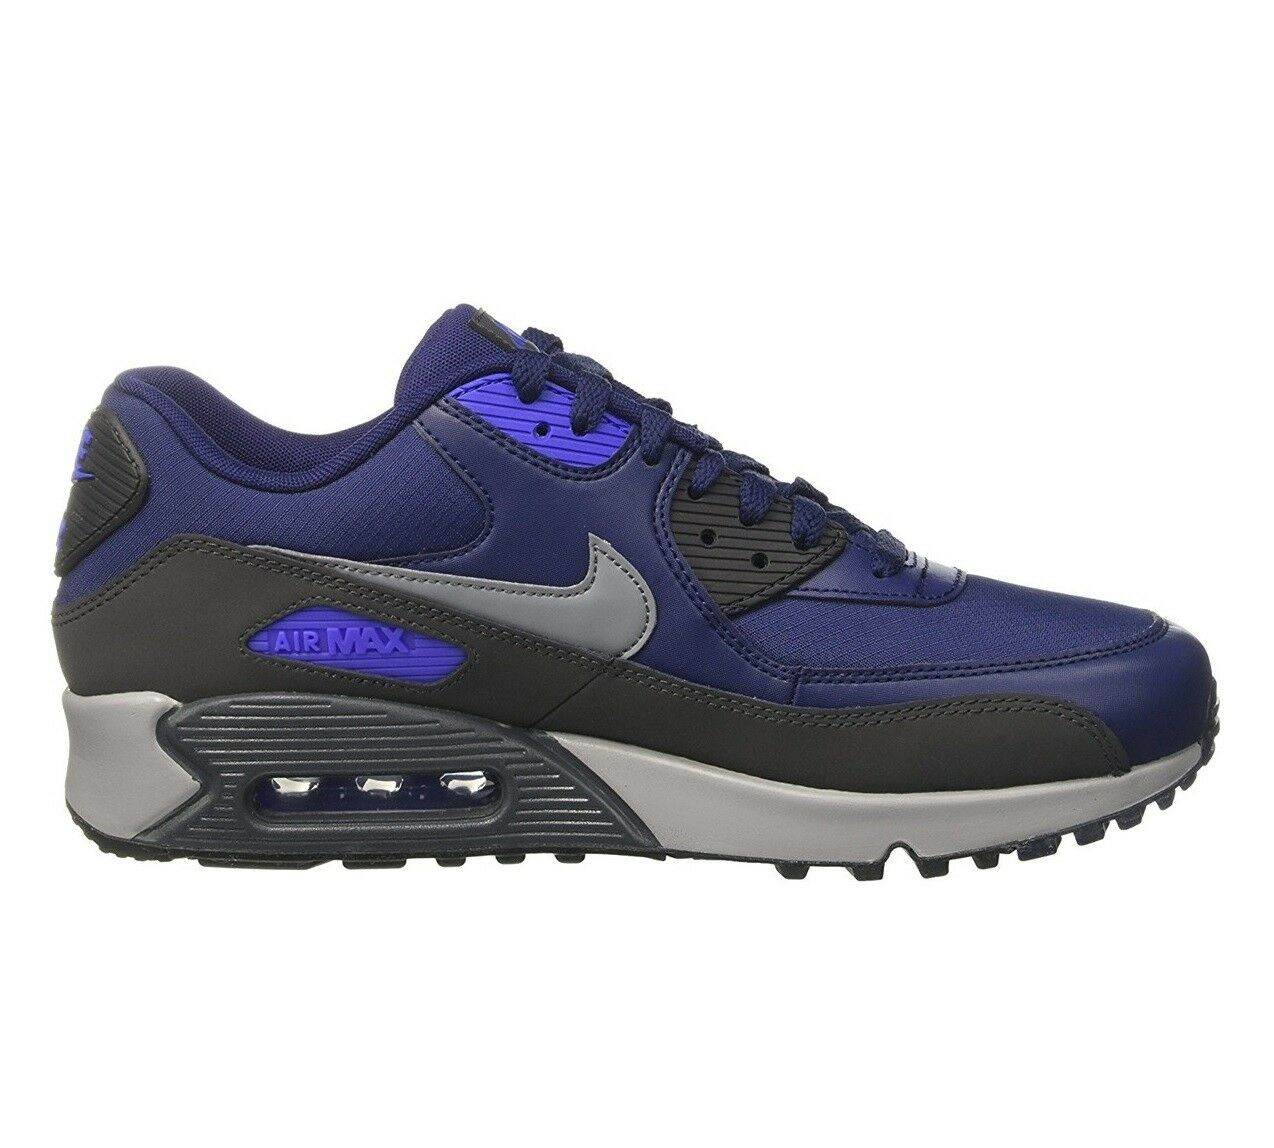 Nike Air Max 90 Essential Mens 537384-418 Binary bluee Running shoes Size 8.5